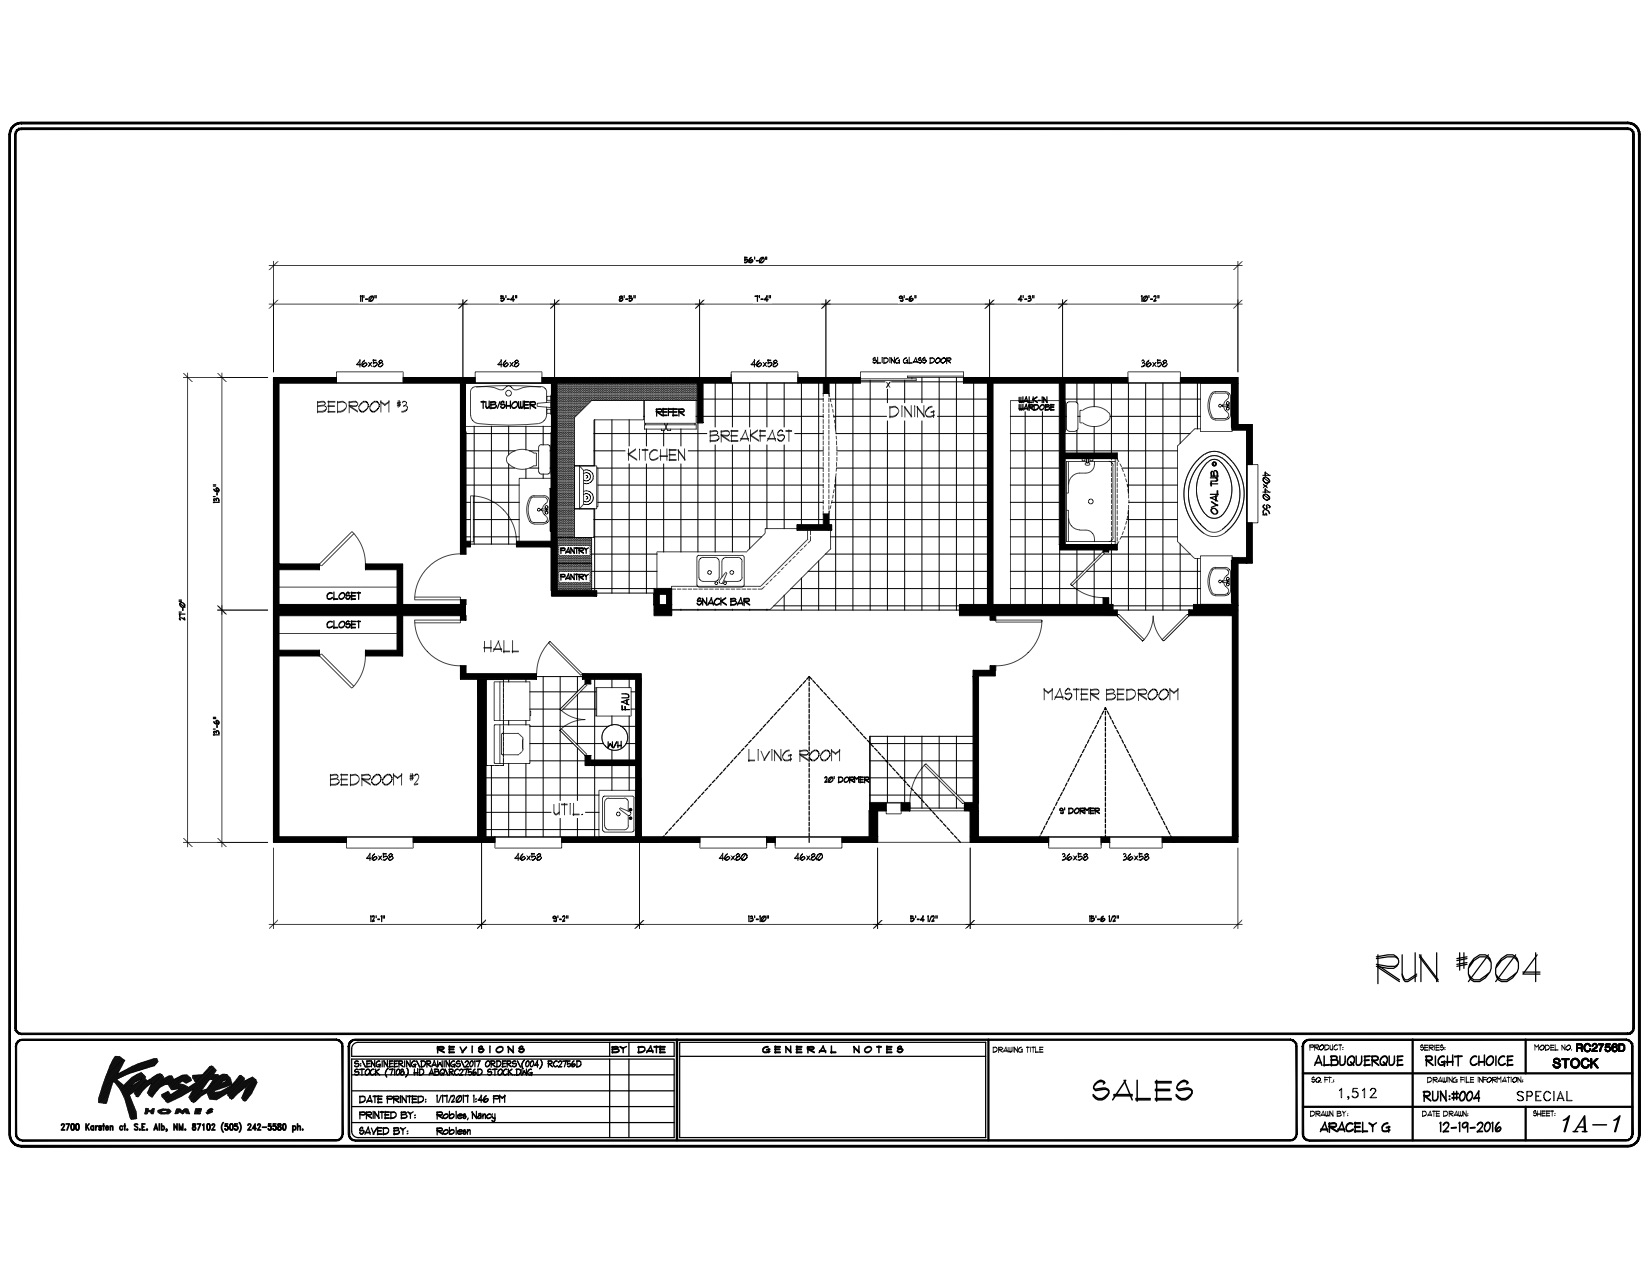 Homes Direct Modular Homes - Model RC2756D - Floorplan